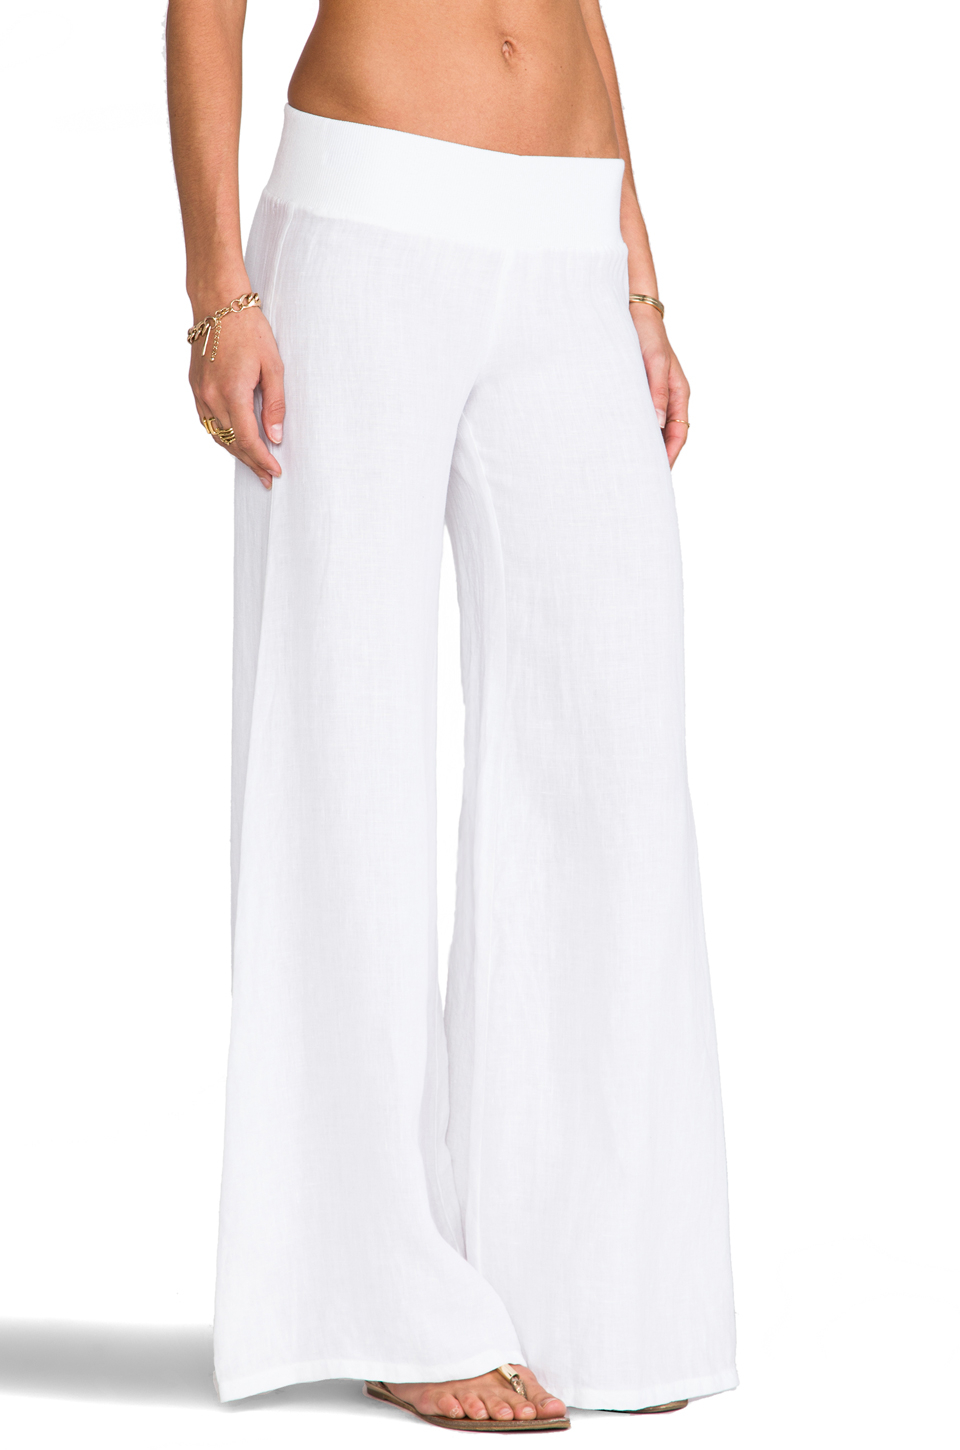 Luxury Here Are 5 Of The Main Reasons Wide Leg Pants Are Perfect For You! 1Wide Leg Pants Make You Look Slimmer! I Started Out With This One As Its The Most Common Mistake Women Tend To  Grab A Pair Of Wide Legged Pants With Flip Flops